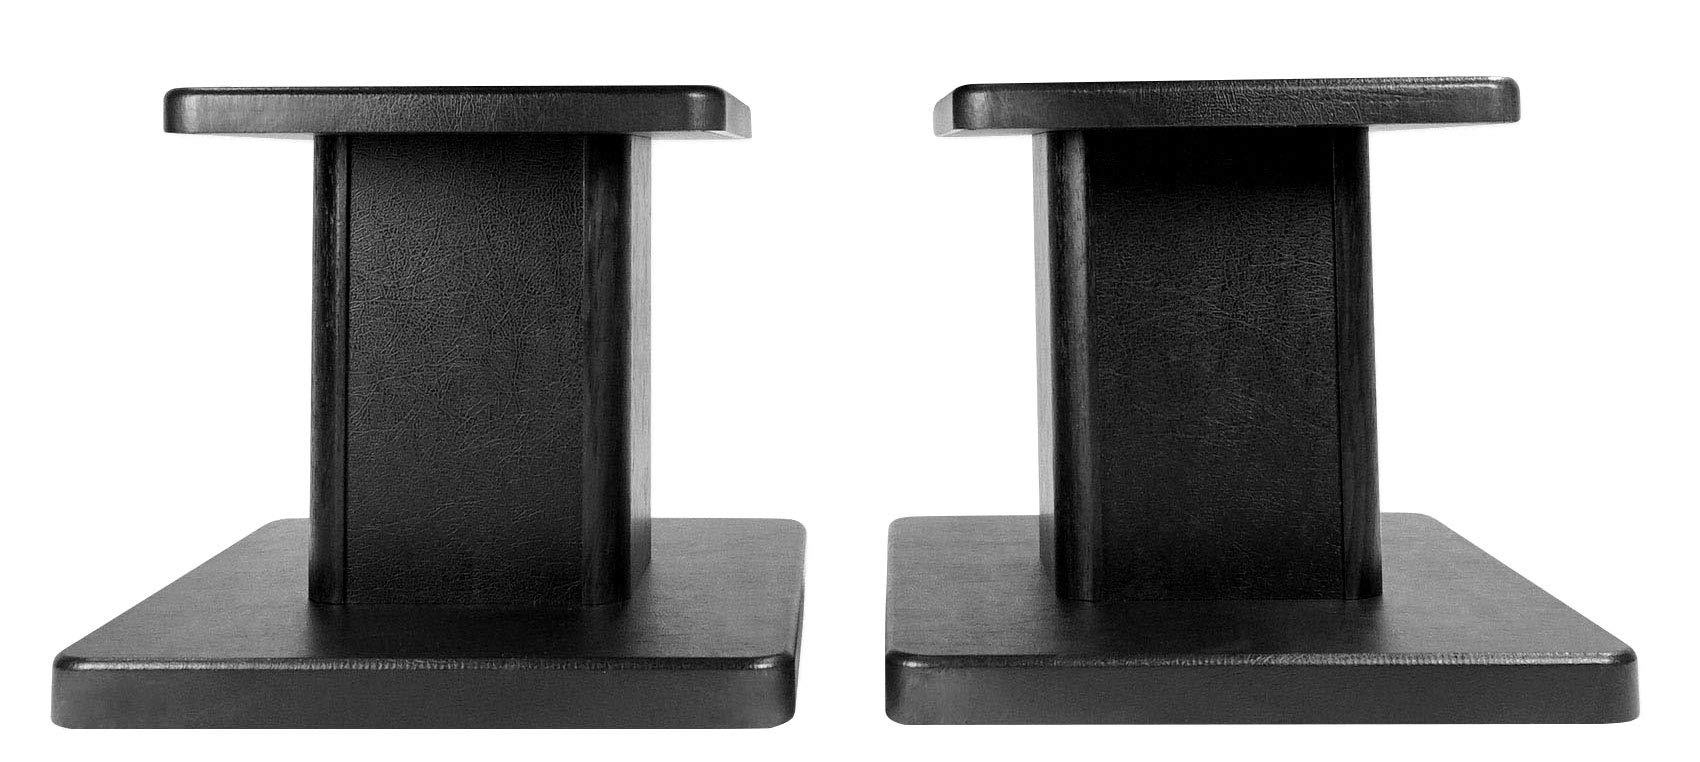 Rockville Pair Computer/Bookshelf Desktop Speaker/Studio Monitor Stands RHT8G